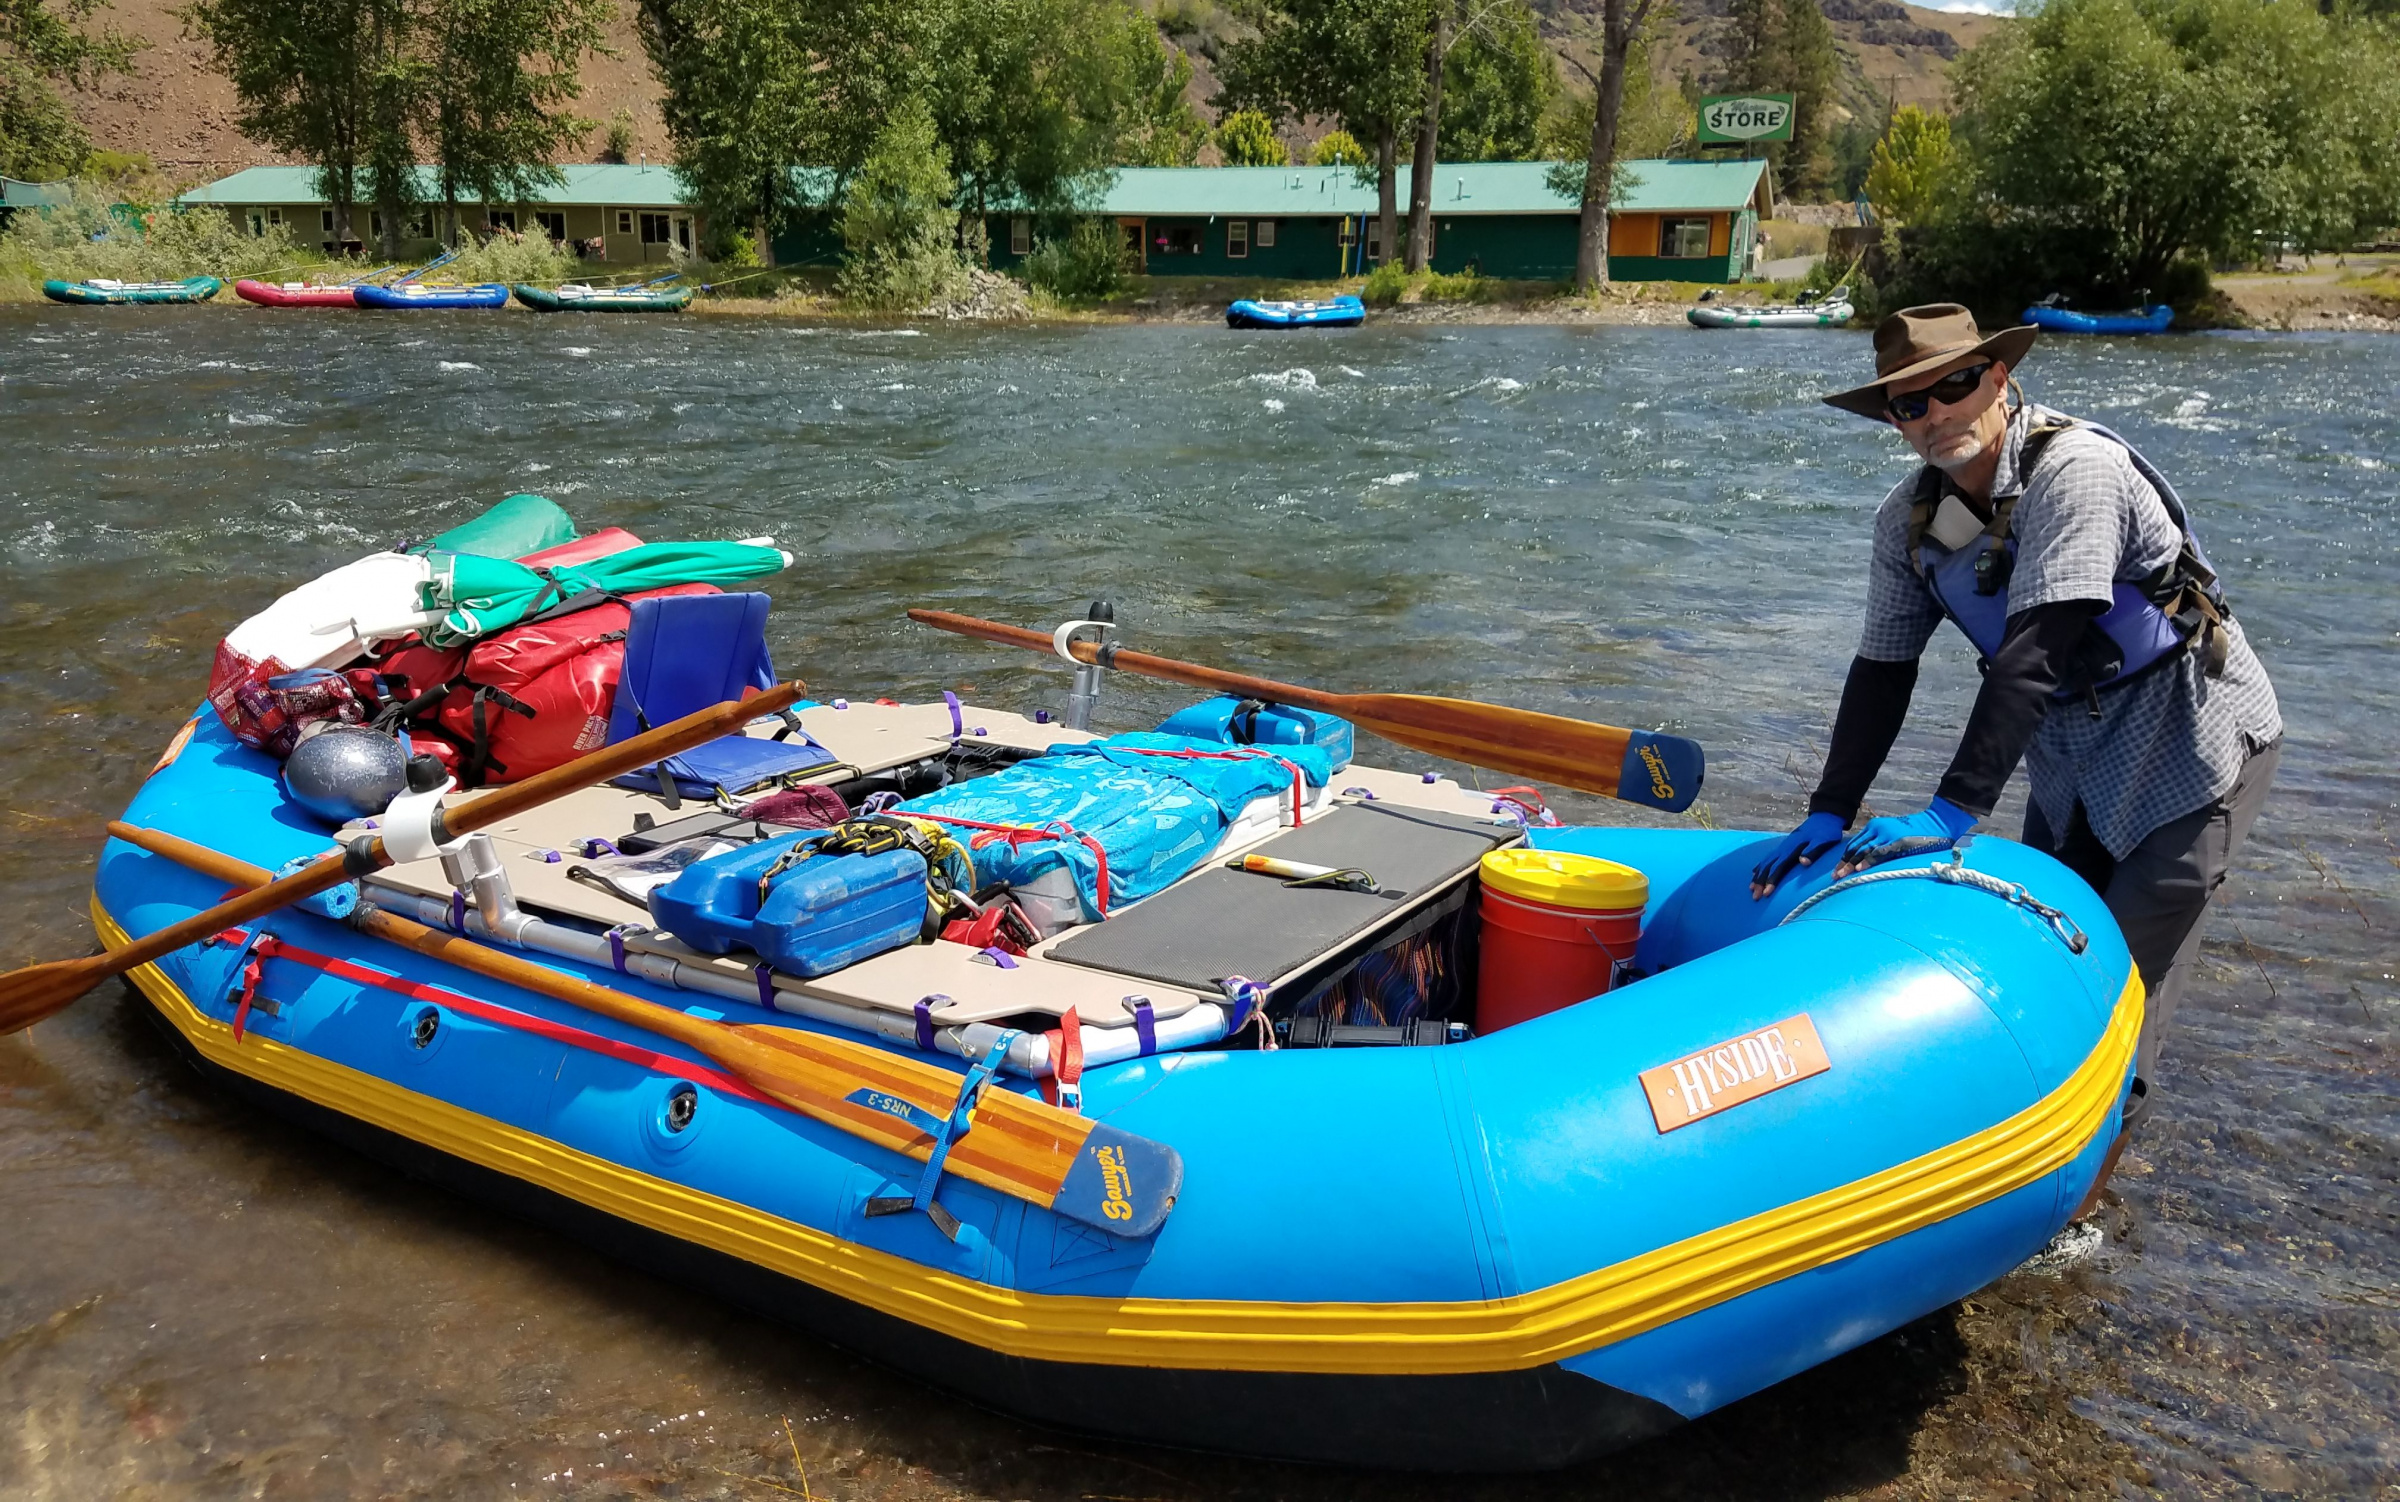 Click image for larger version  Name:Raft0.jpg Views:50 Size:1.62 MB ID:40937